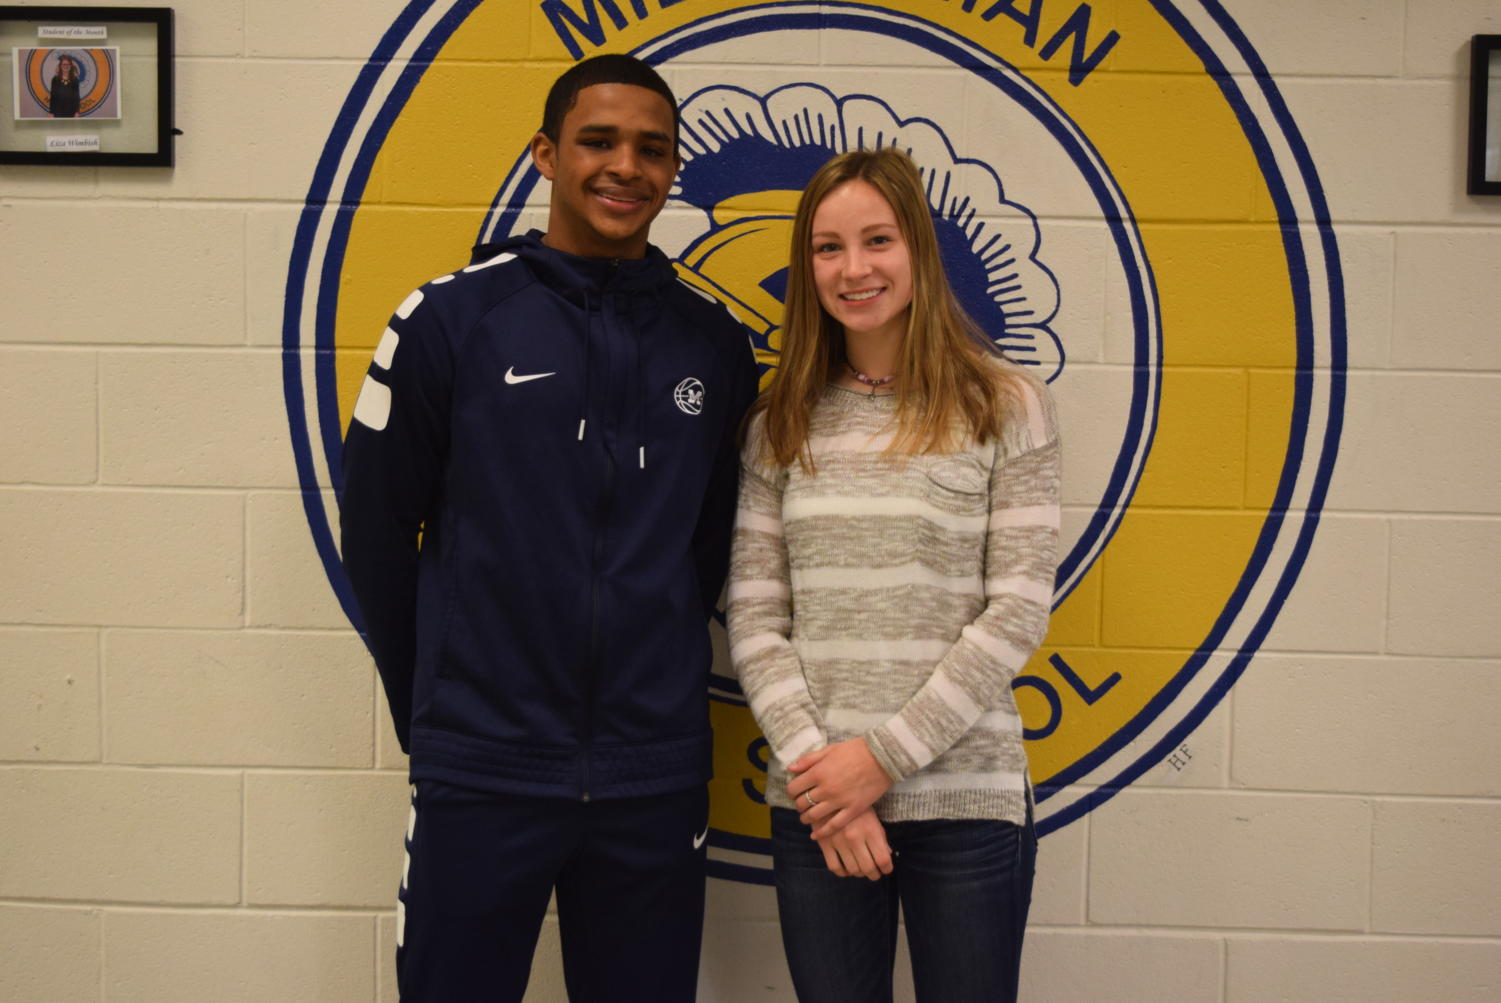 Congratulations, @GoMidlo February Students of the Month: Justin Penn and Katie Daniluk.